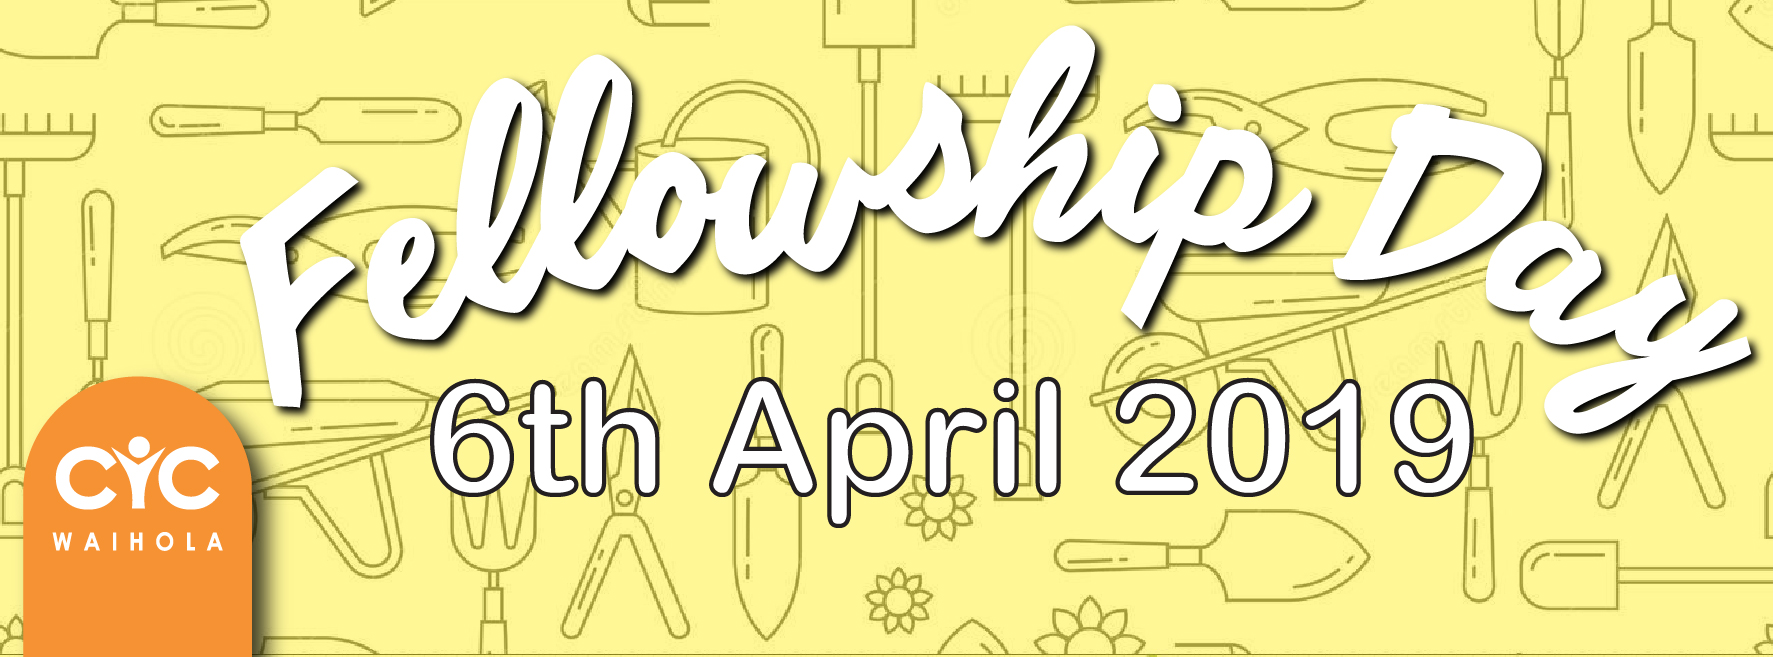 Fellowship Day – 6th April 2019